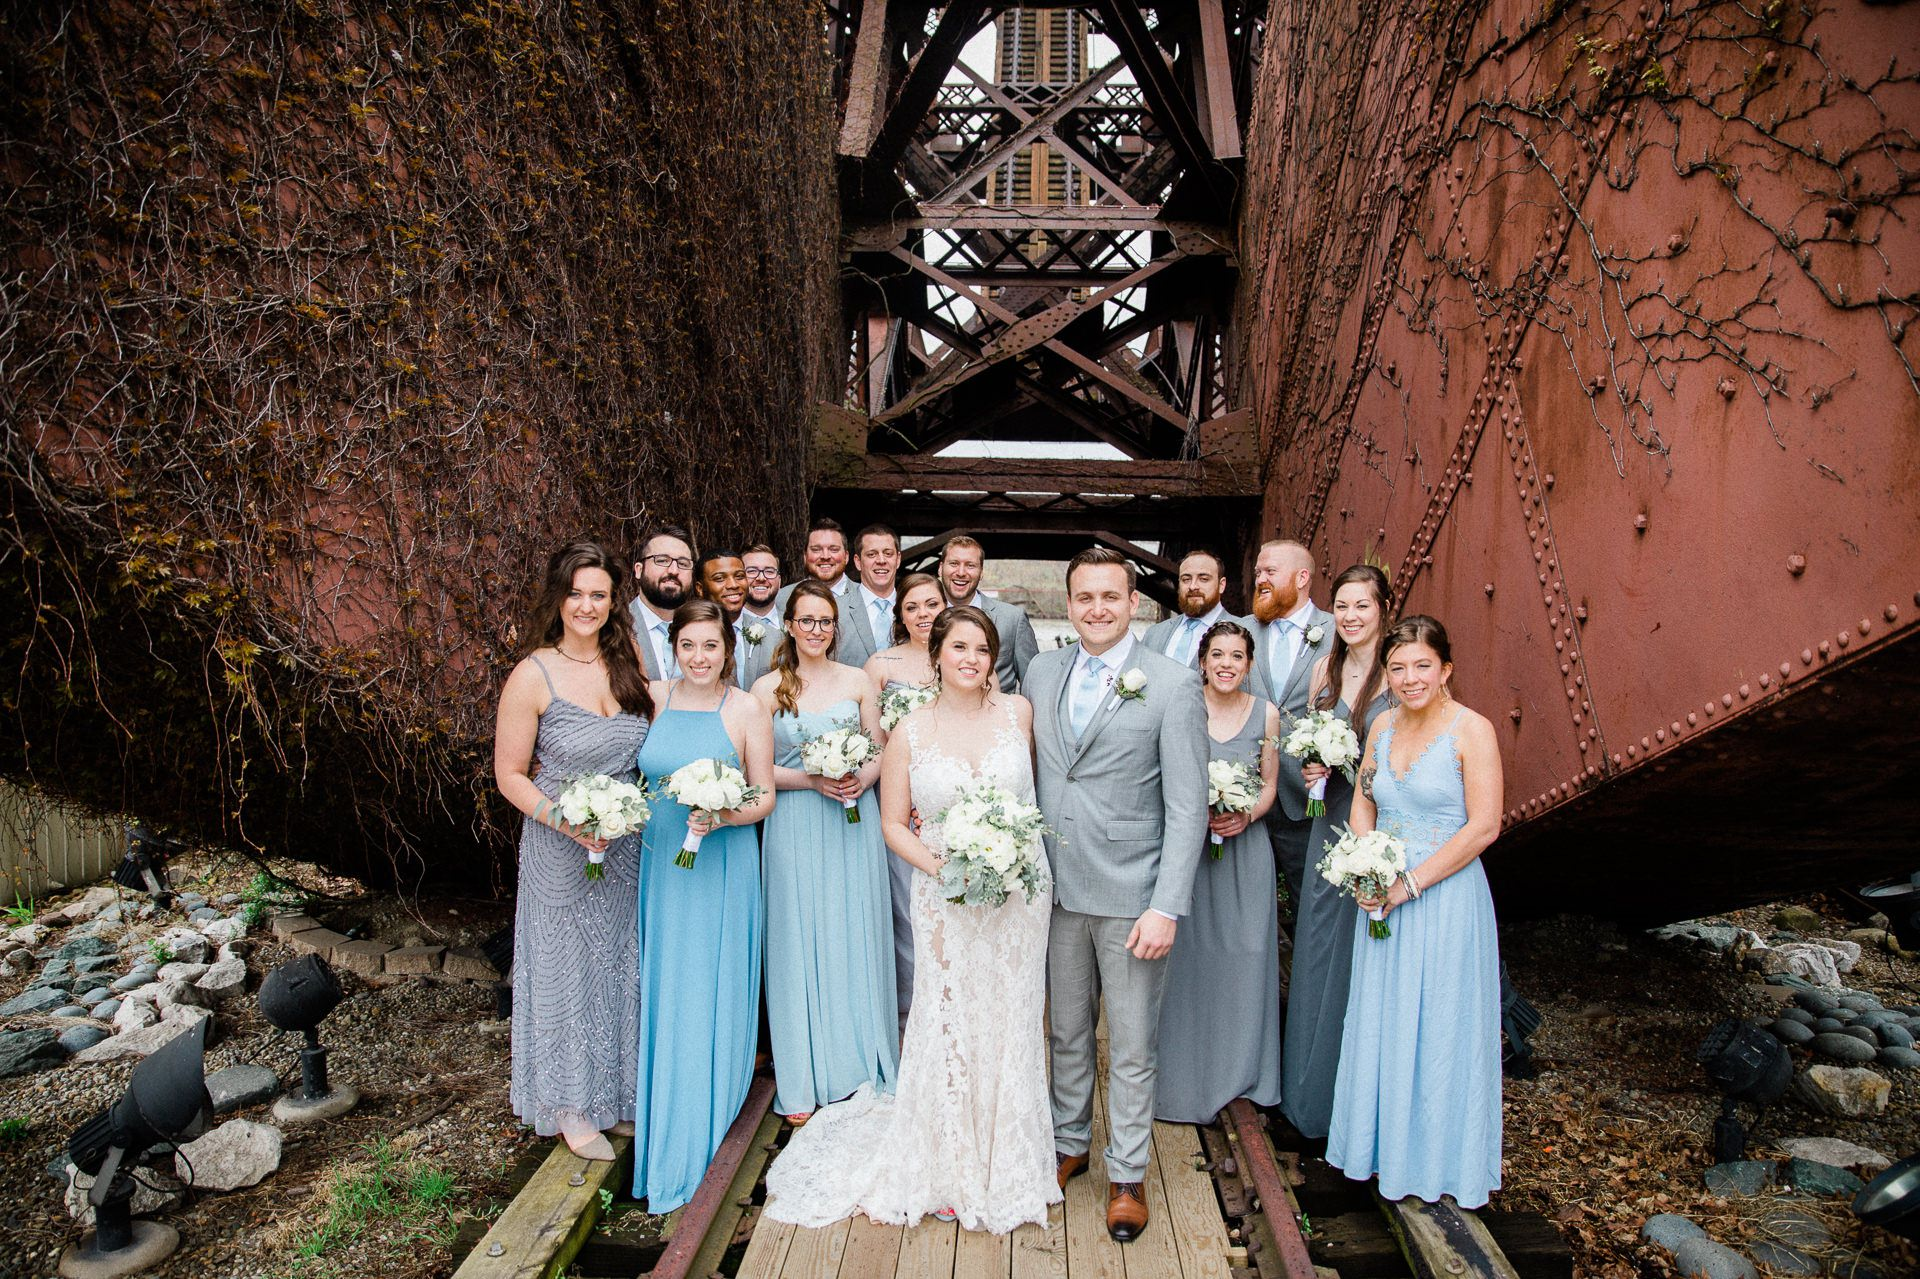 Windows on the River Cleveland Wedding Photographer 1 44.jpg